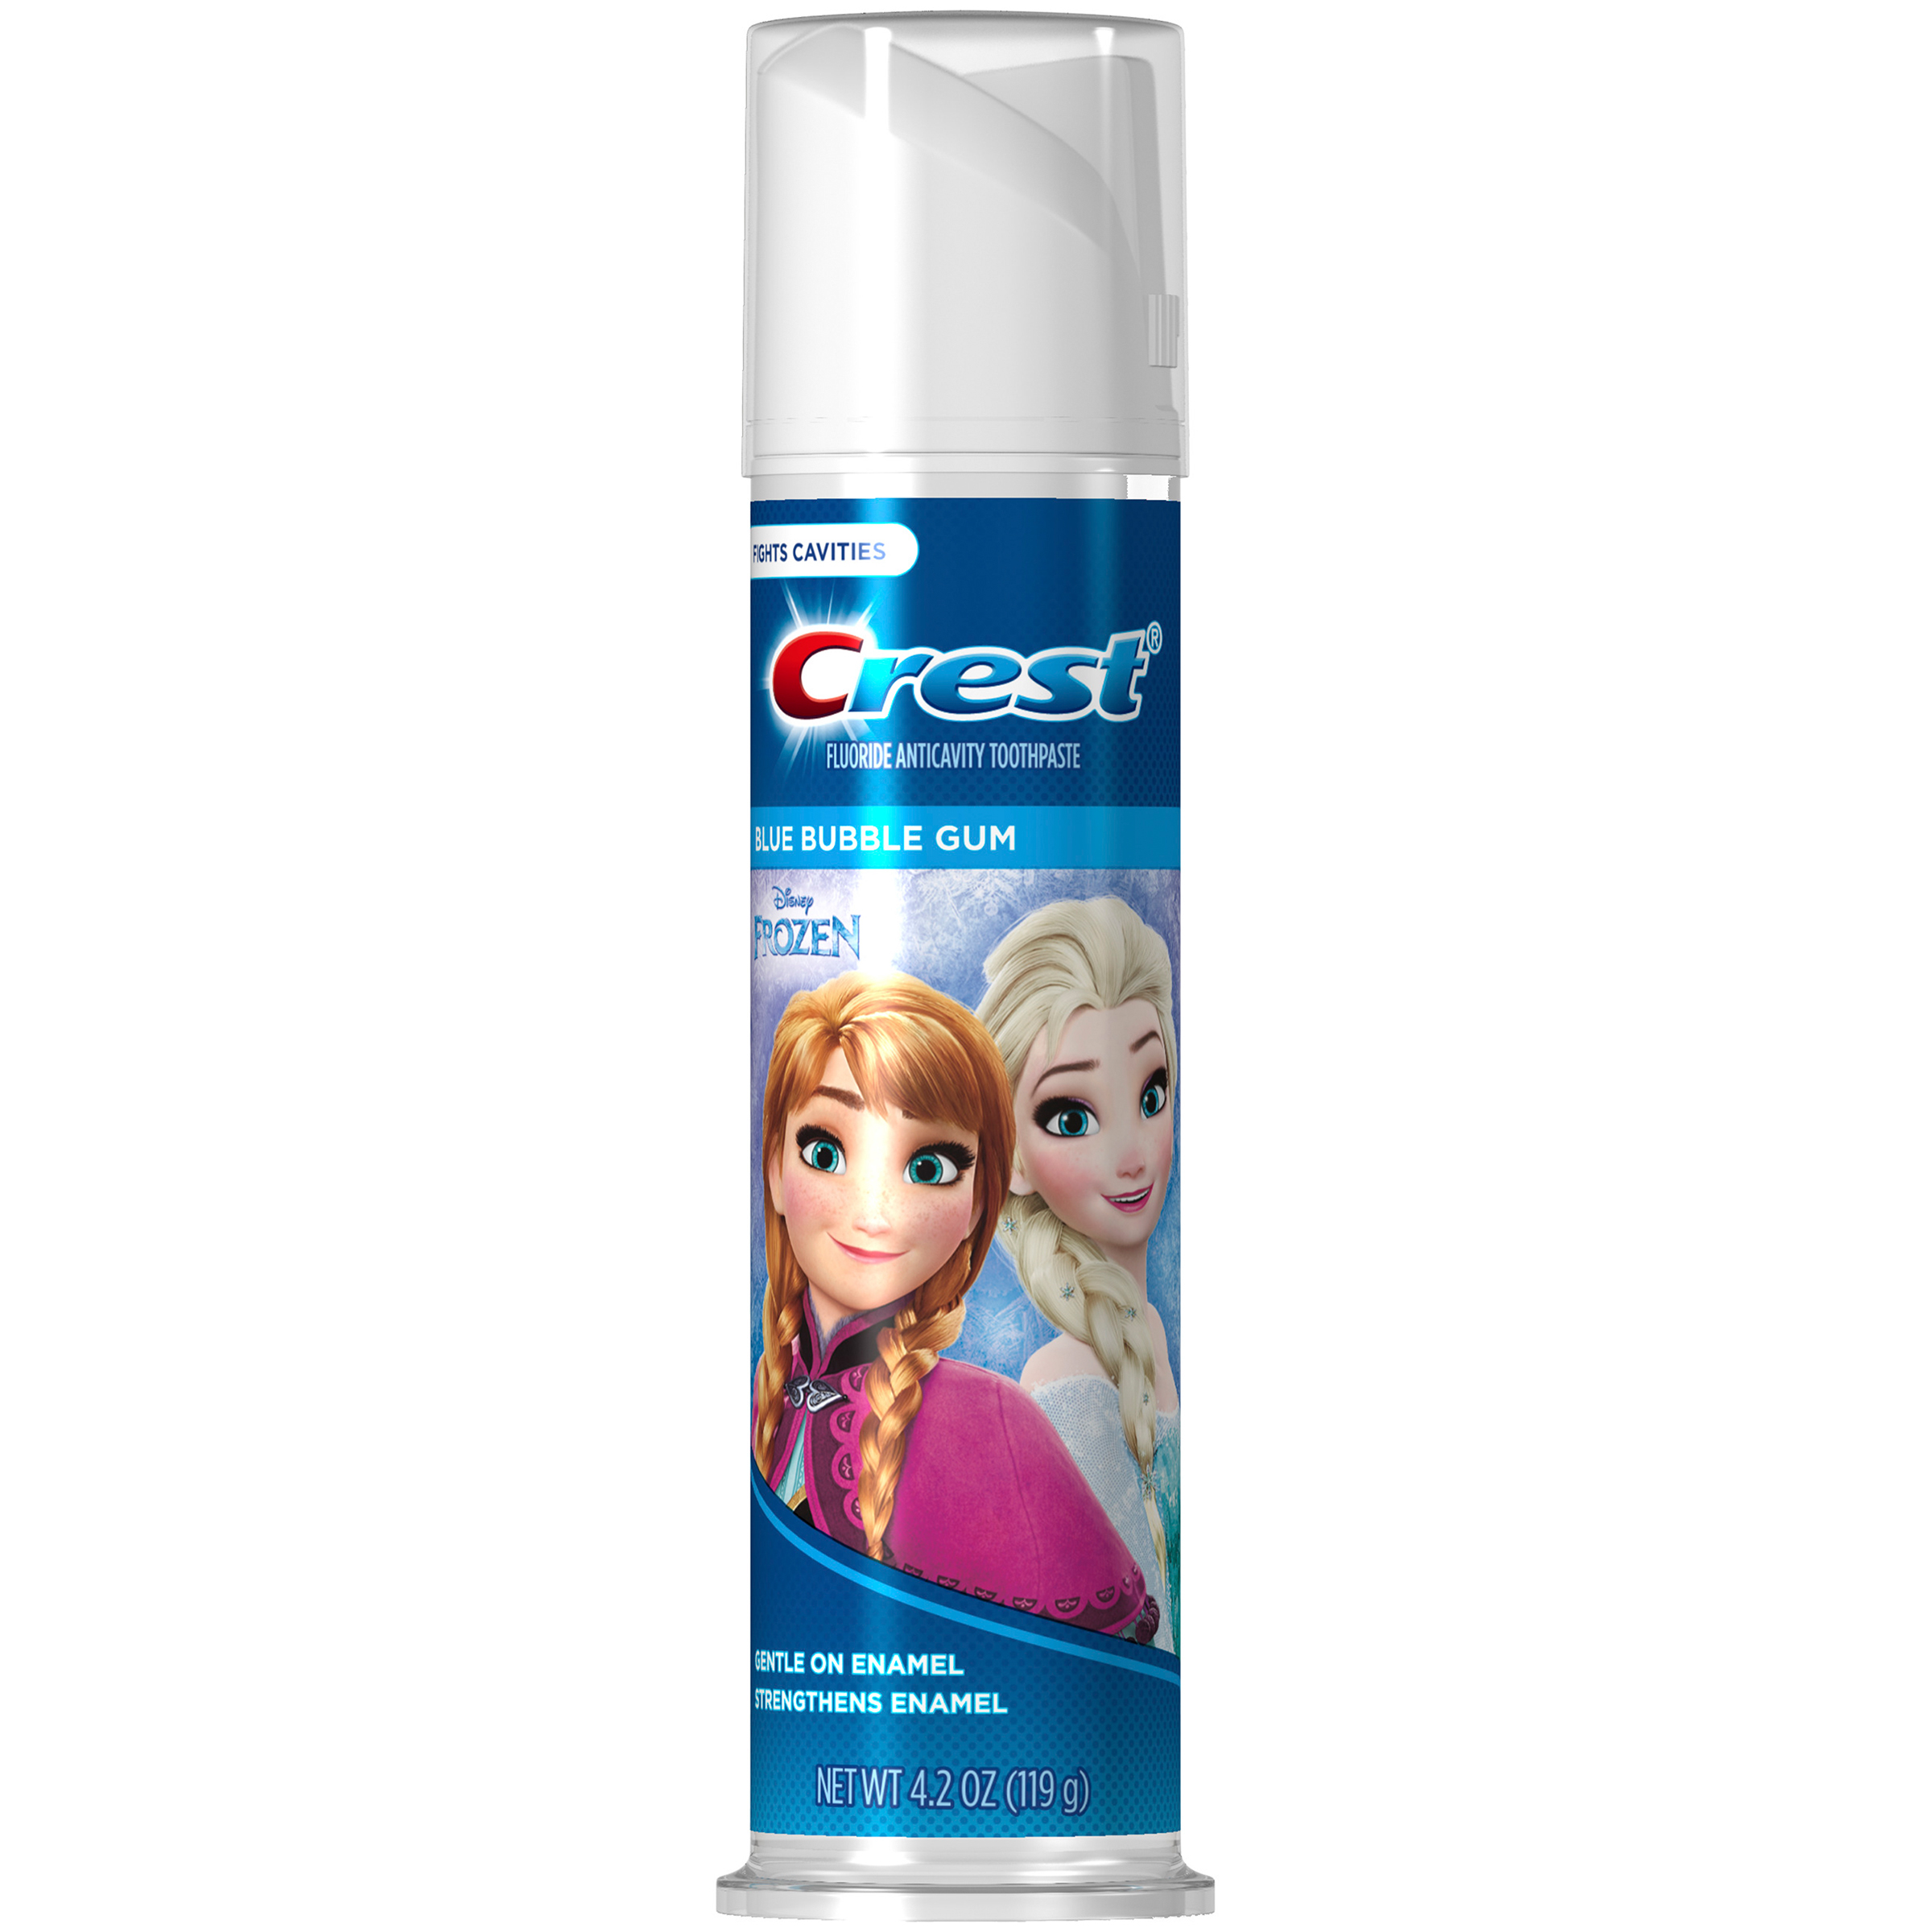 Crest Kid's Cavity Protection Toothpaste (for Kids and Toddlers 2+) Featuring Disney's Frozen, Blue Bubble Gum, 4.2 Ounce